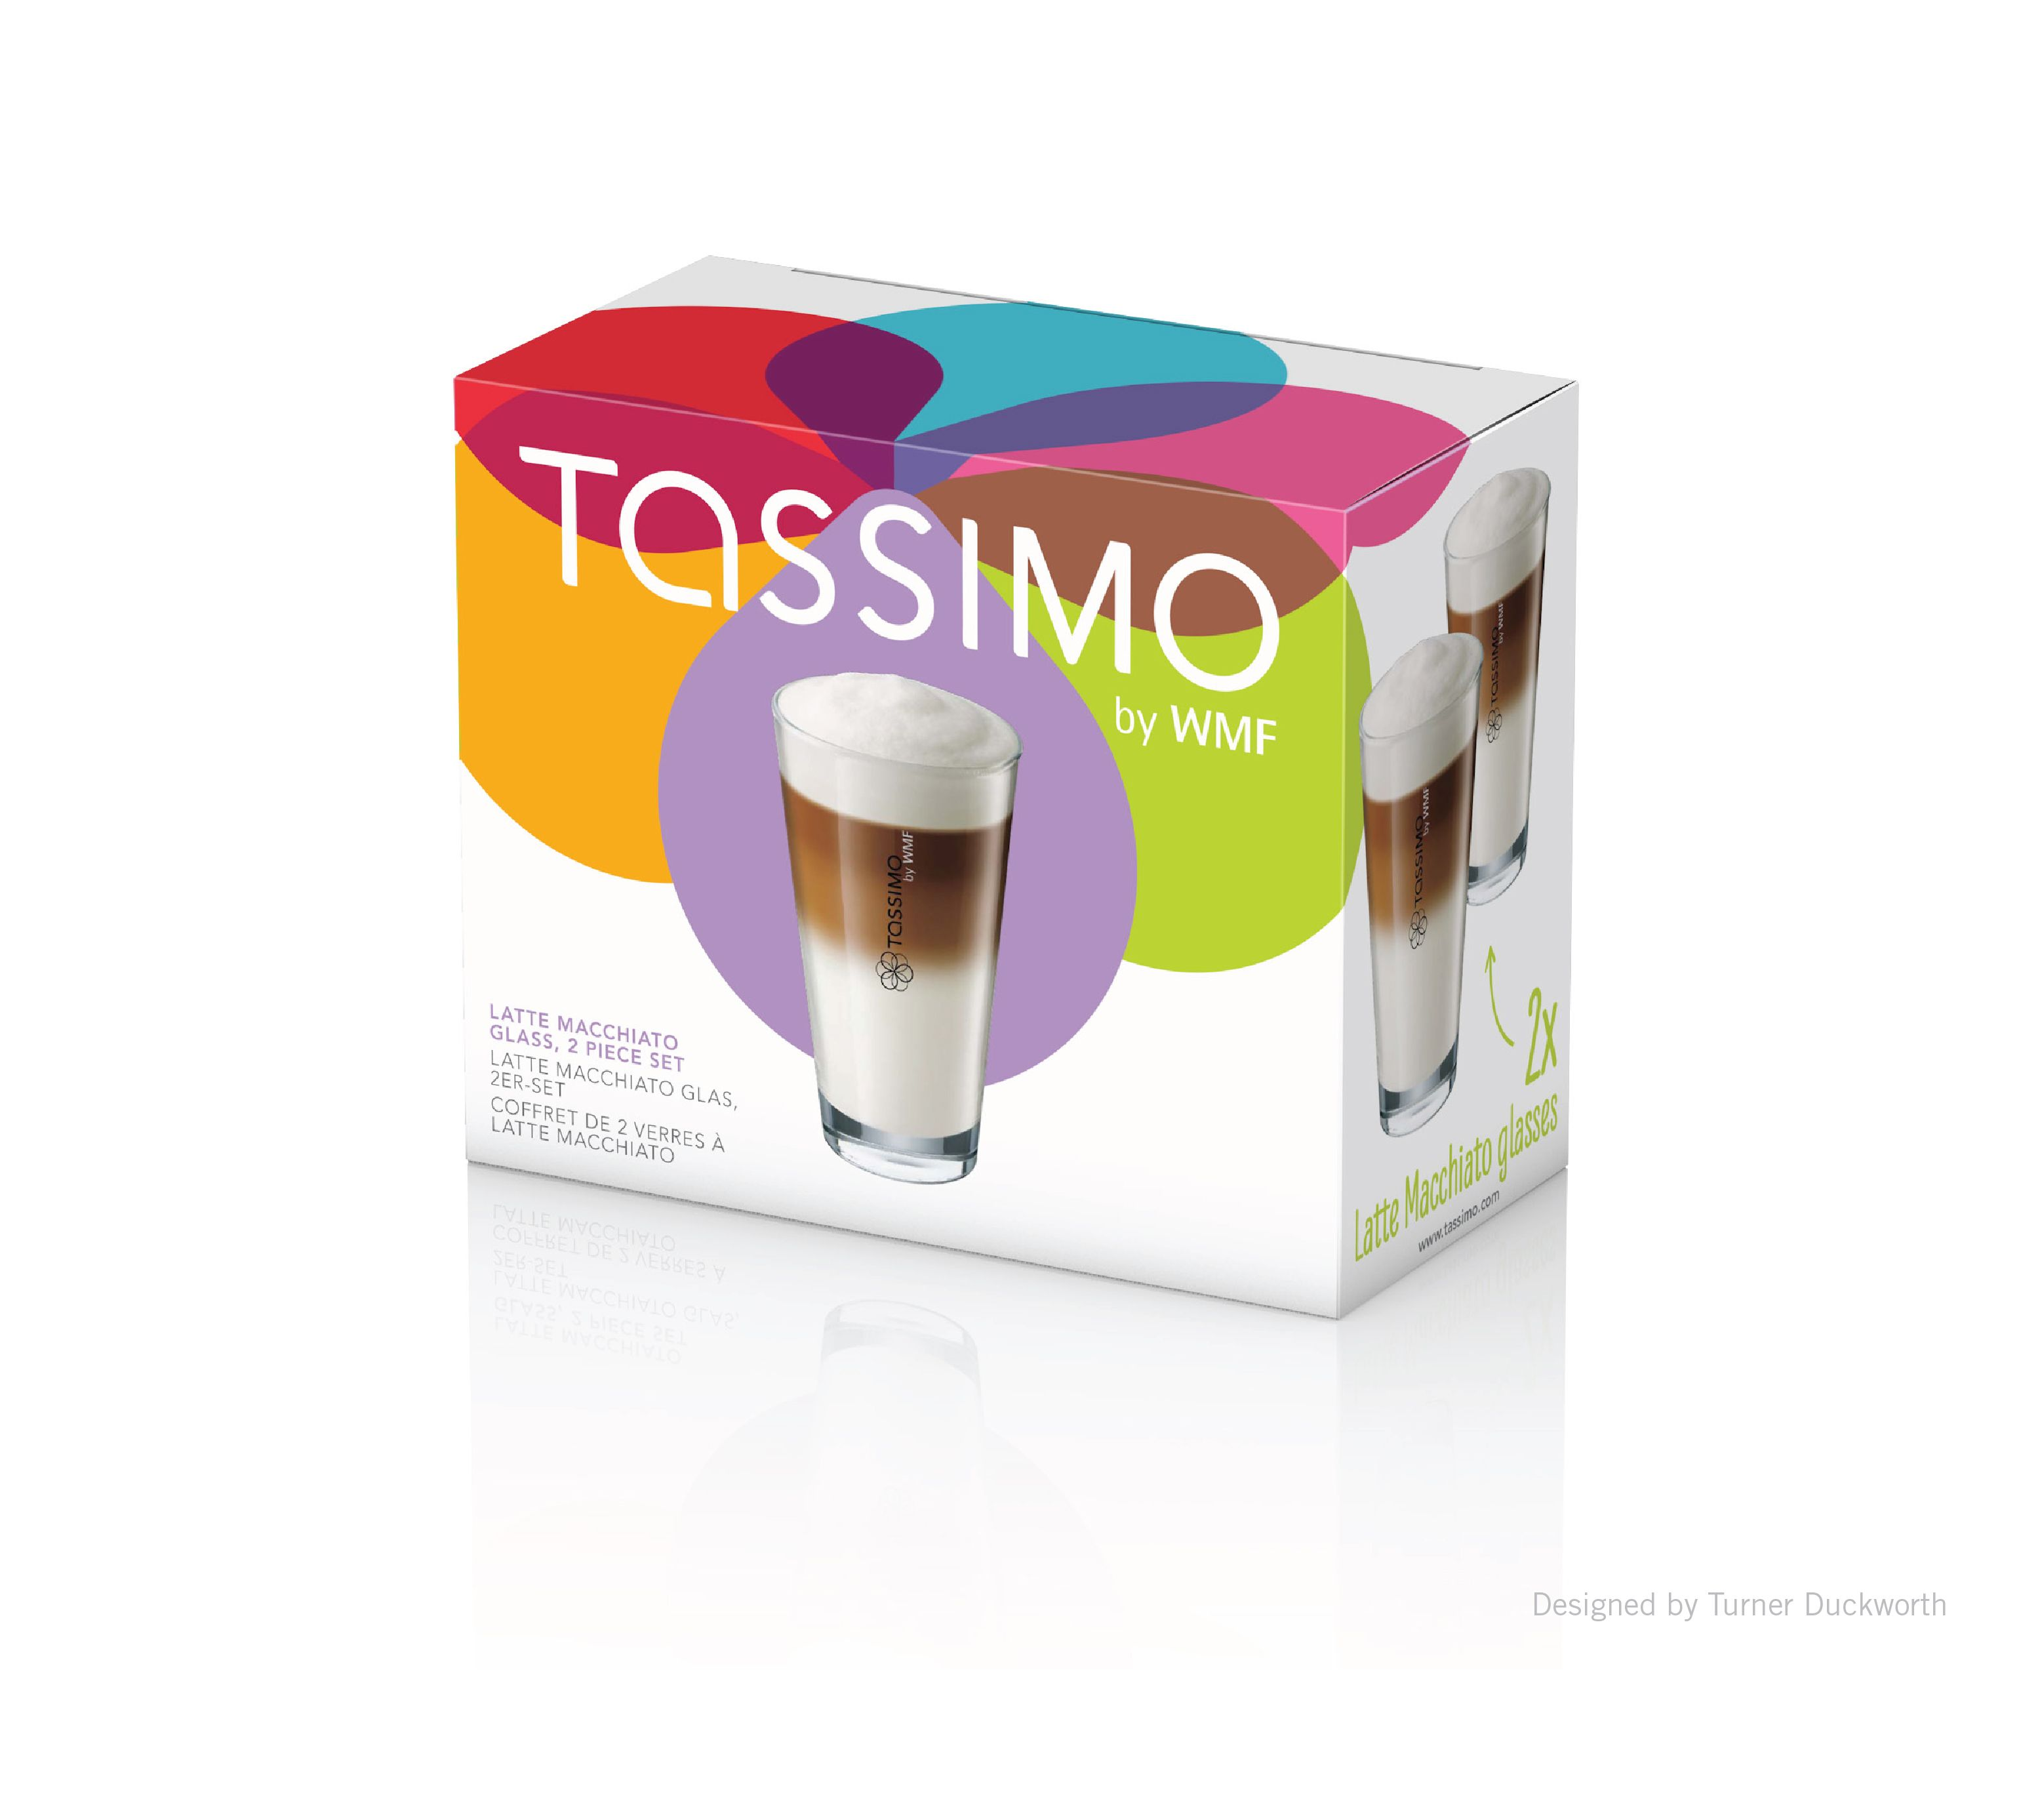 Tassimo Glasses Packaging And Identity. Designed By Turner